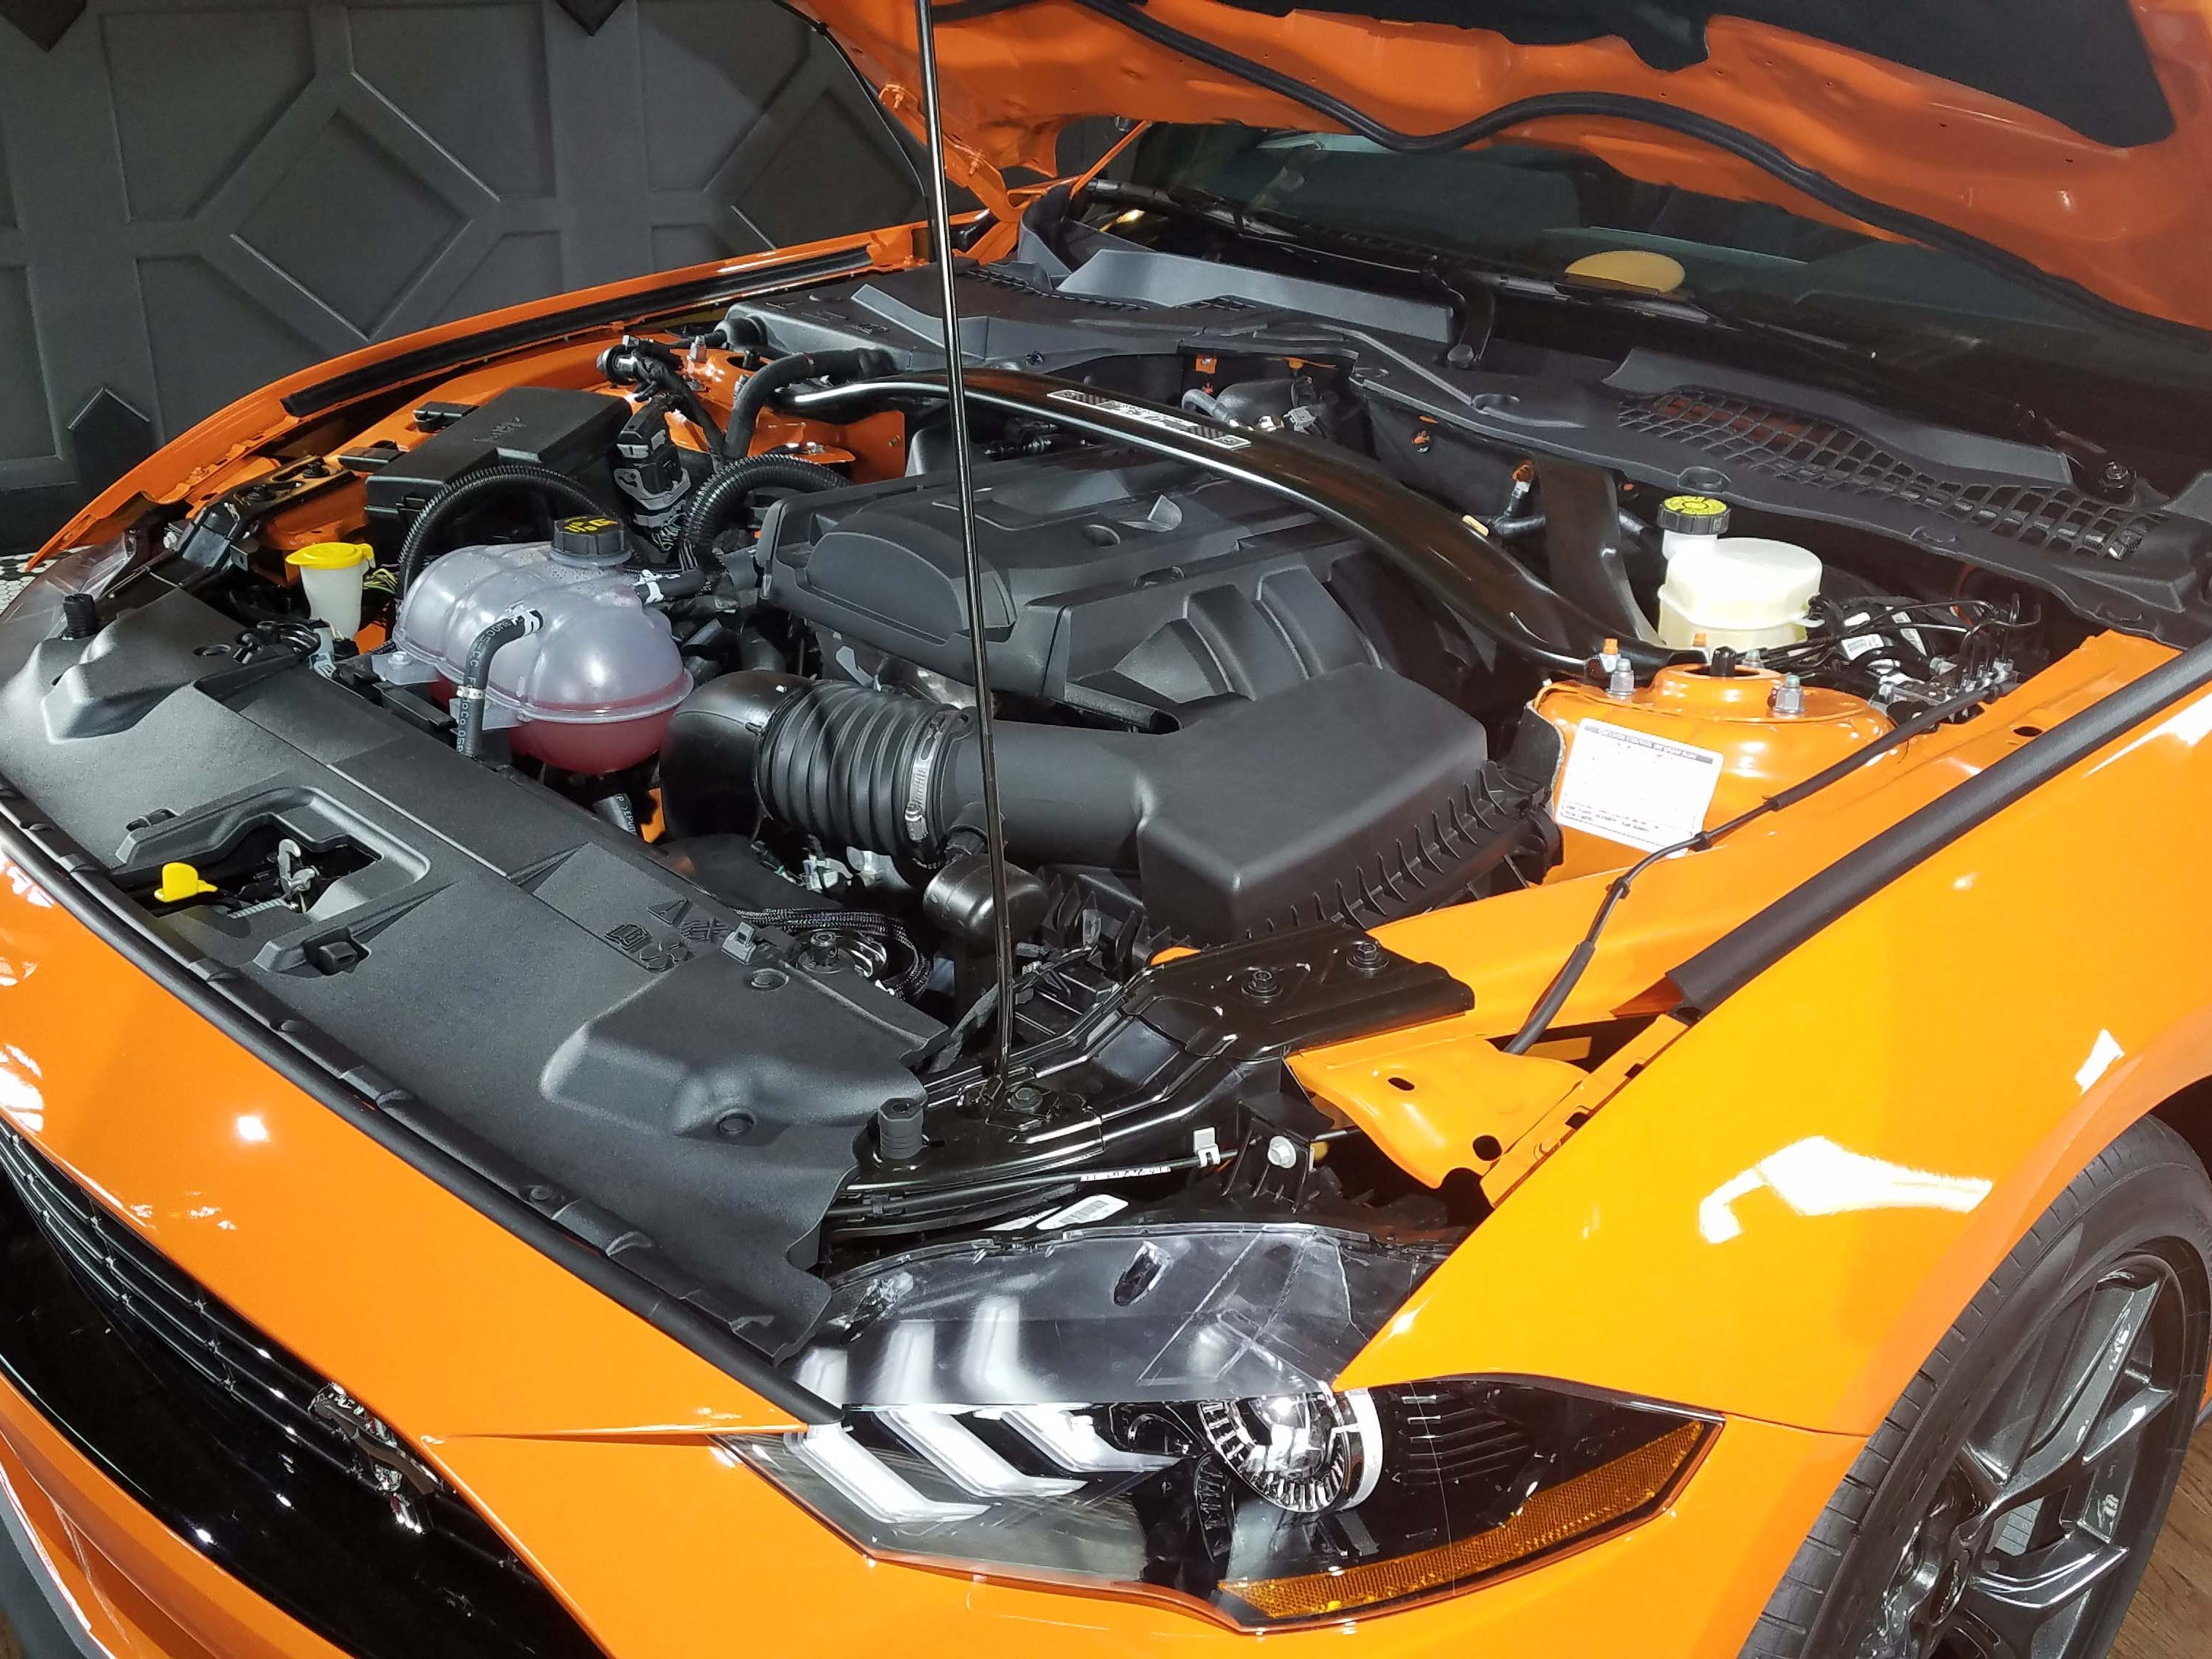 The Ford Mustang Ecoboost High Performance takes the 350-horse, tranverse, turbo-4 engine from the AWD Ford Focus RS and stuffs it under the hood as a 330-horse, rear-wheel drive mill.